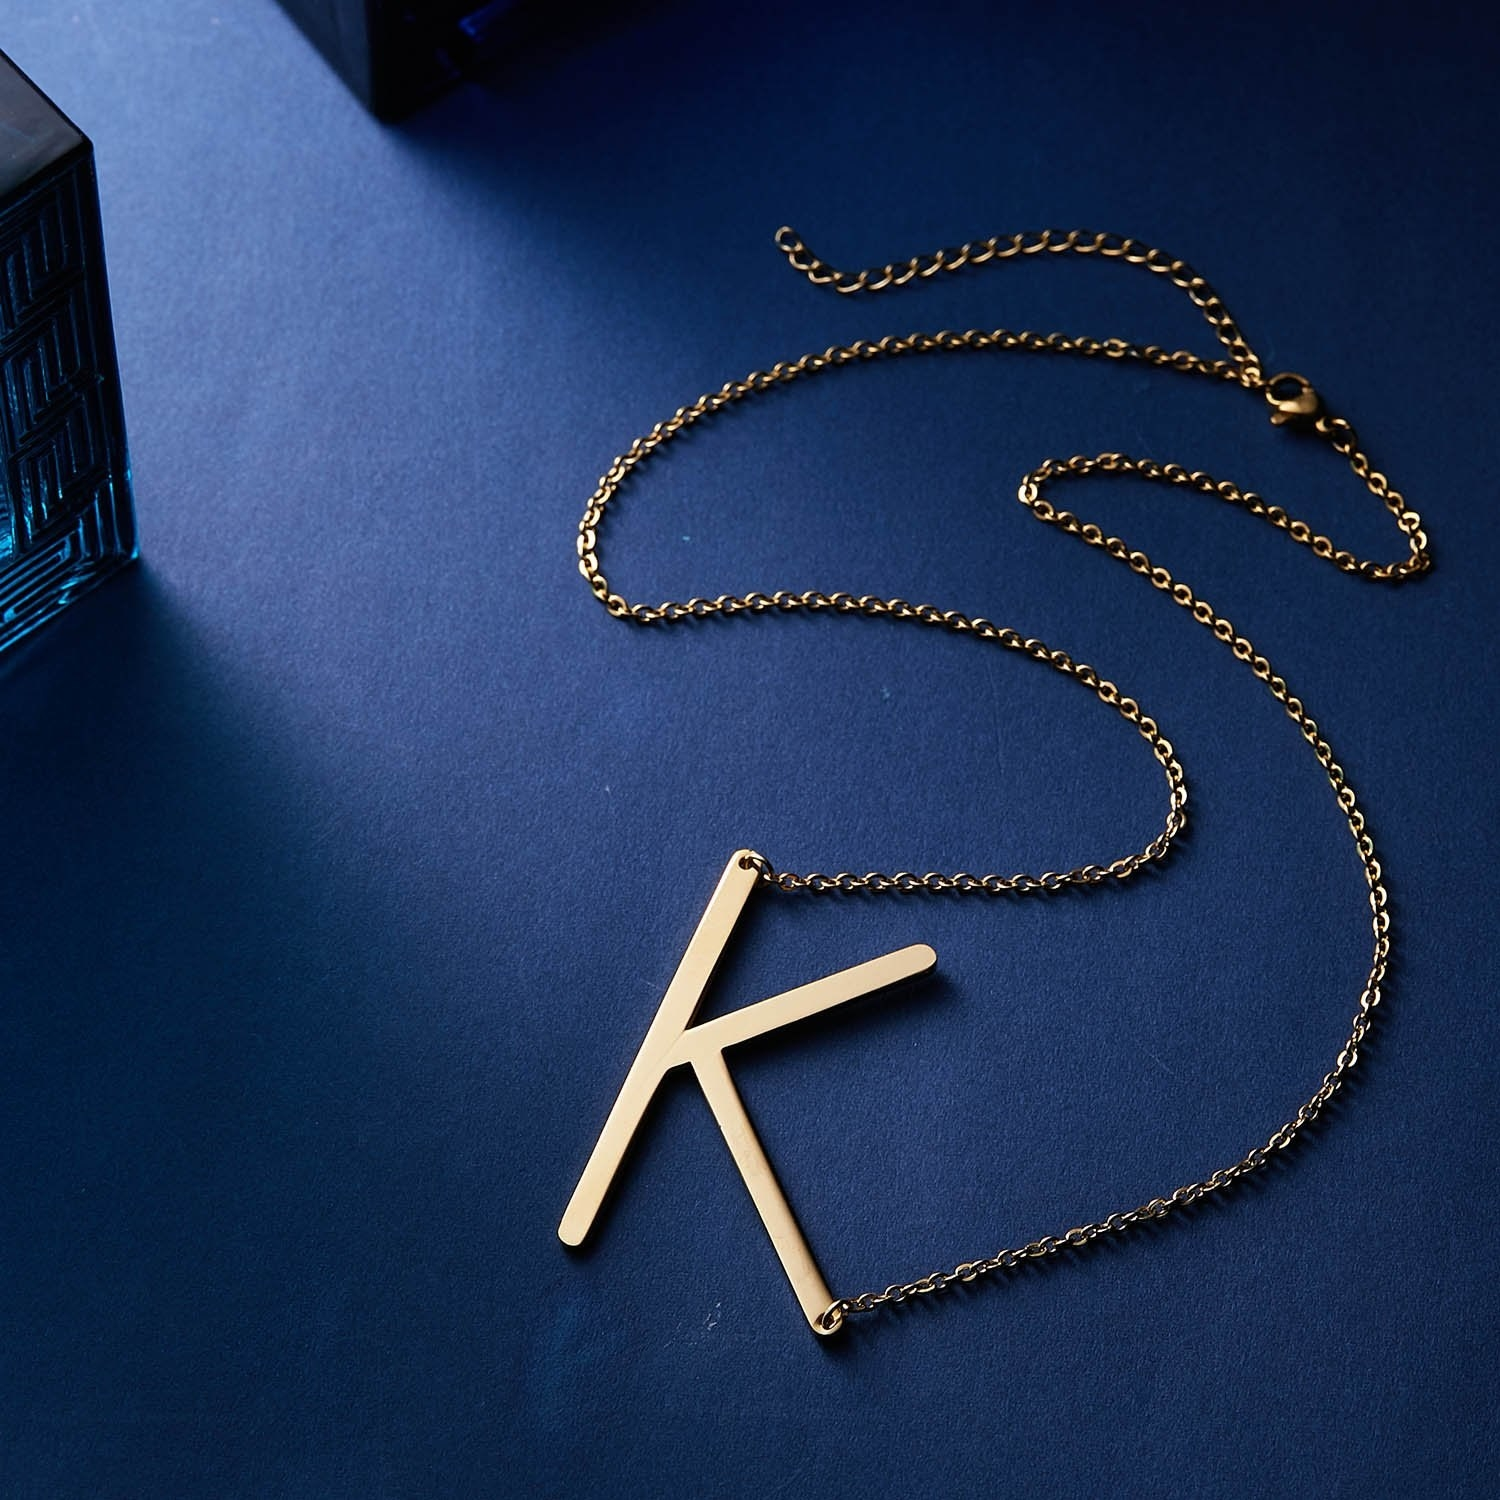 large k pendent on necklace